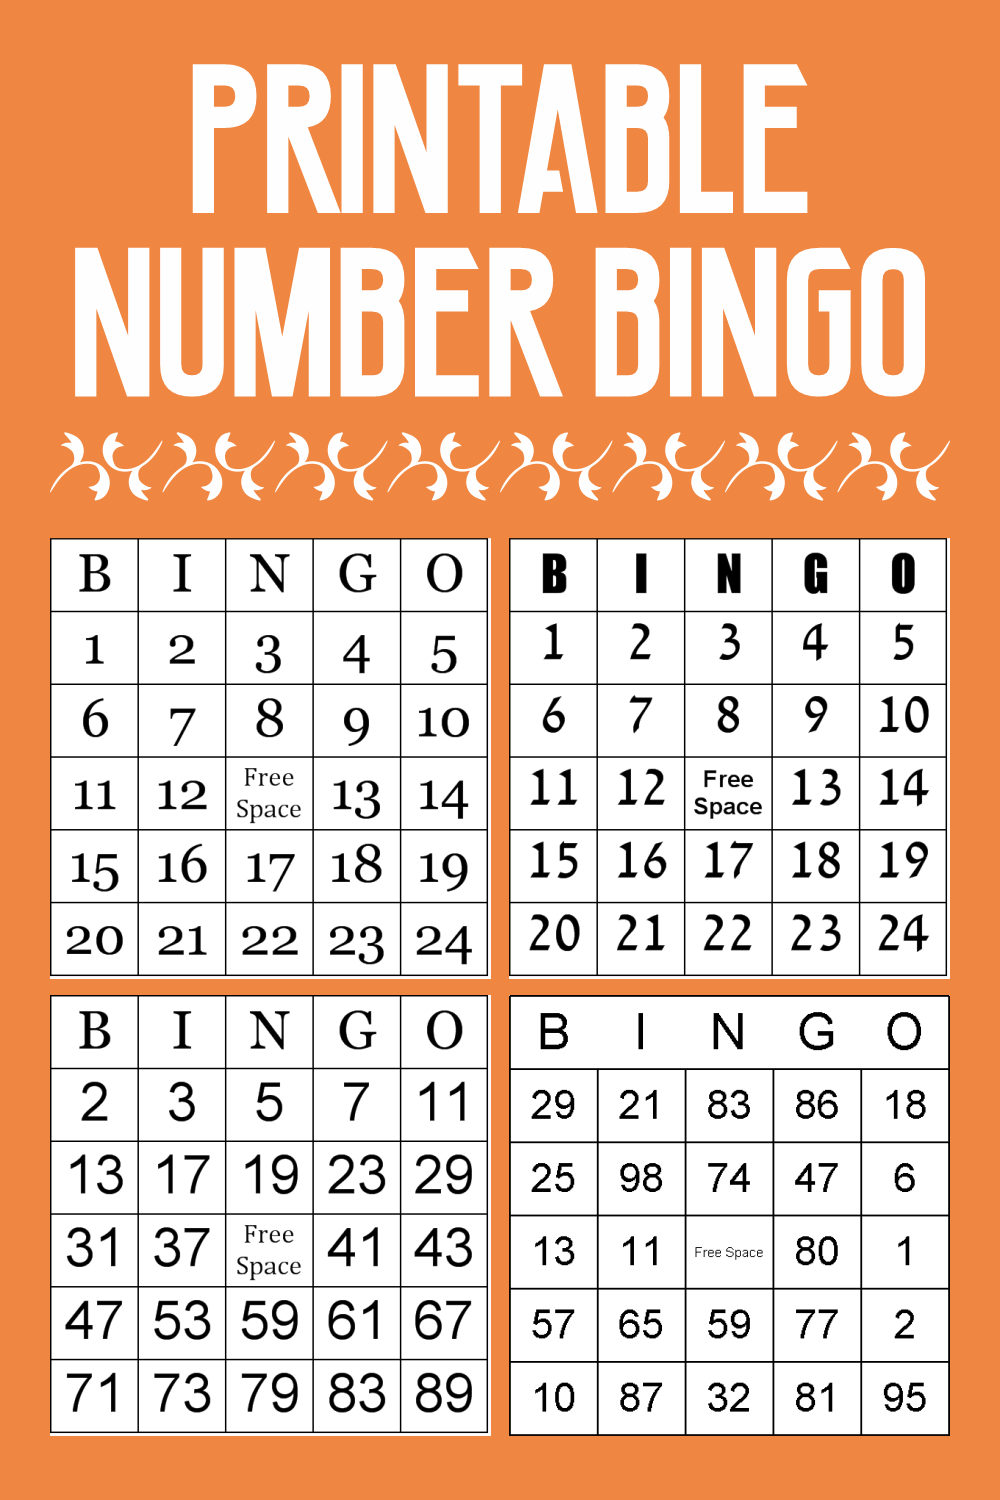 Printable Number Bingo